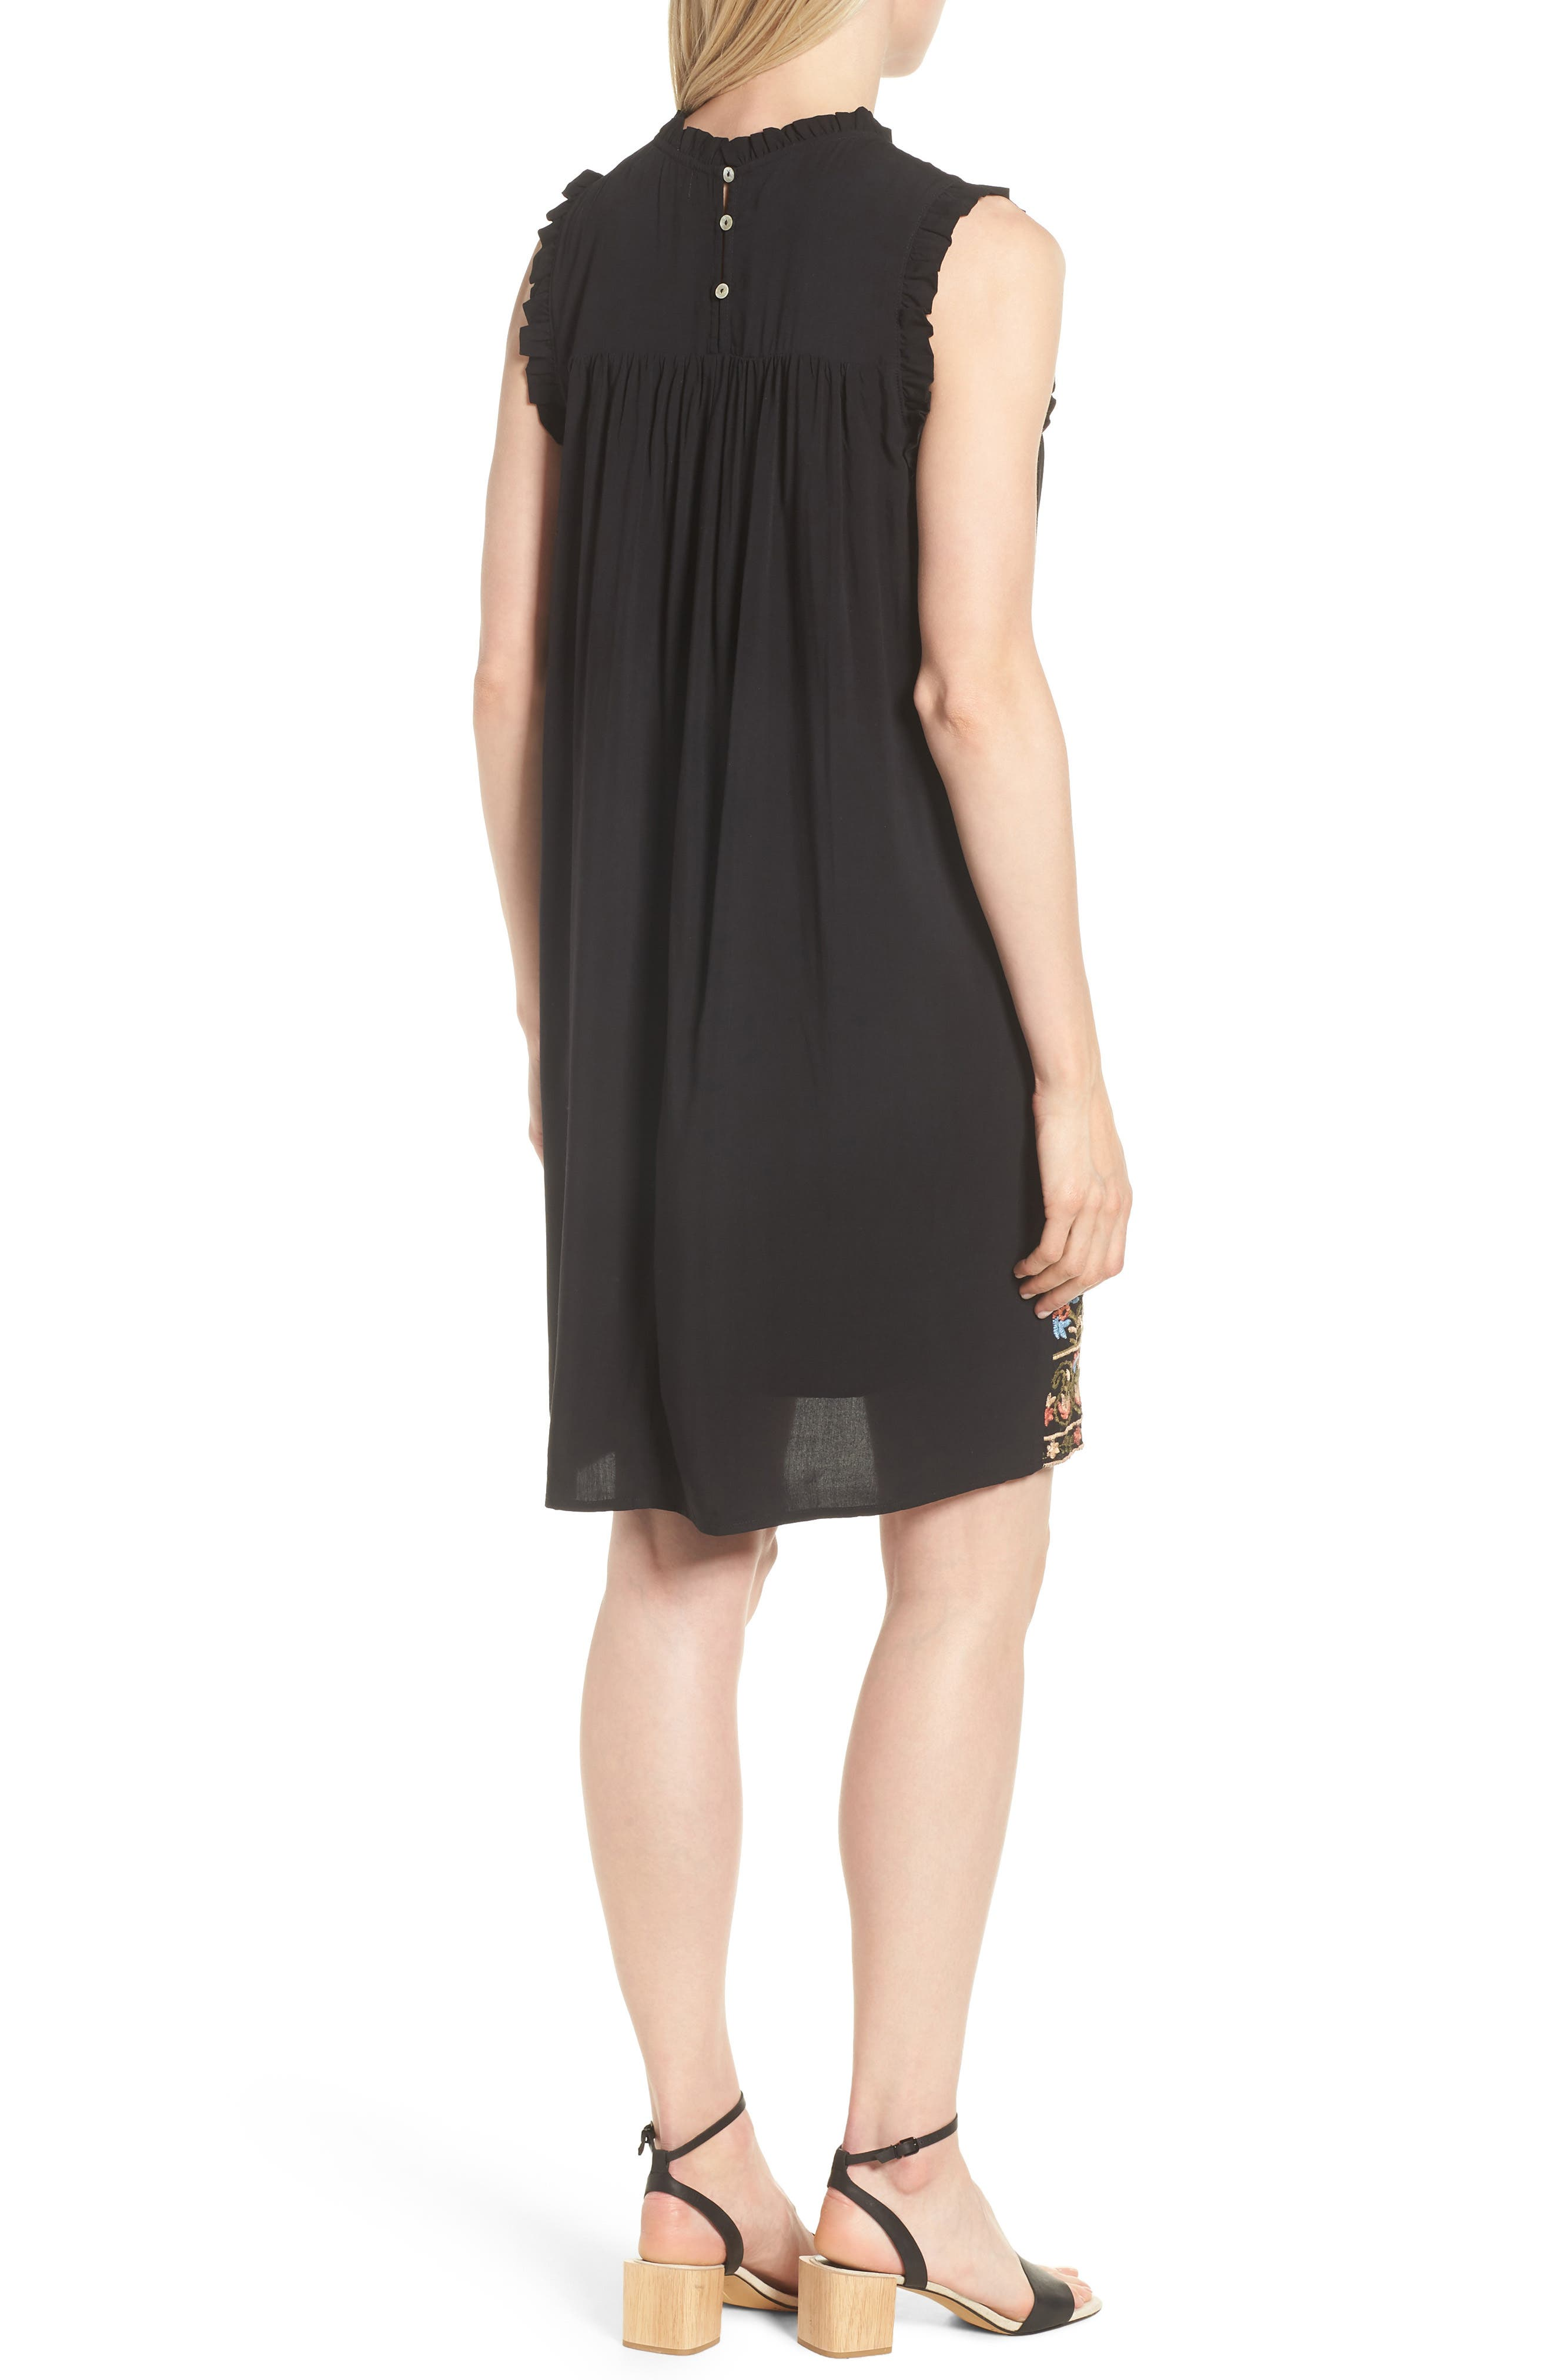 Pintuck Embroidered Shift Dress,                             Alternate thumbnail 2, color,                             Black Olive